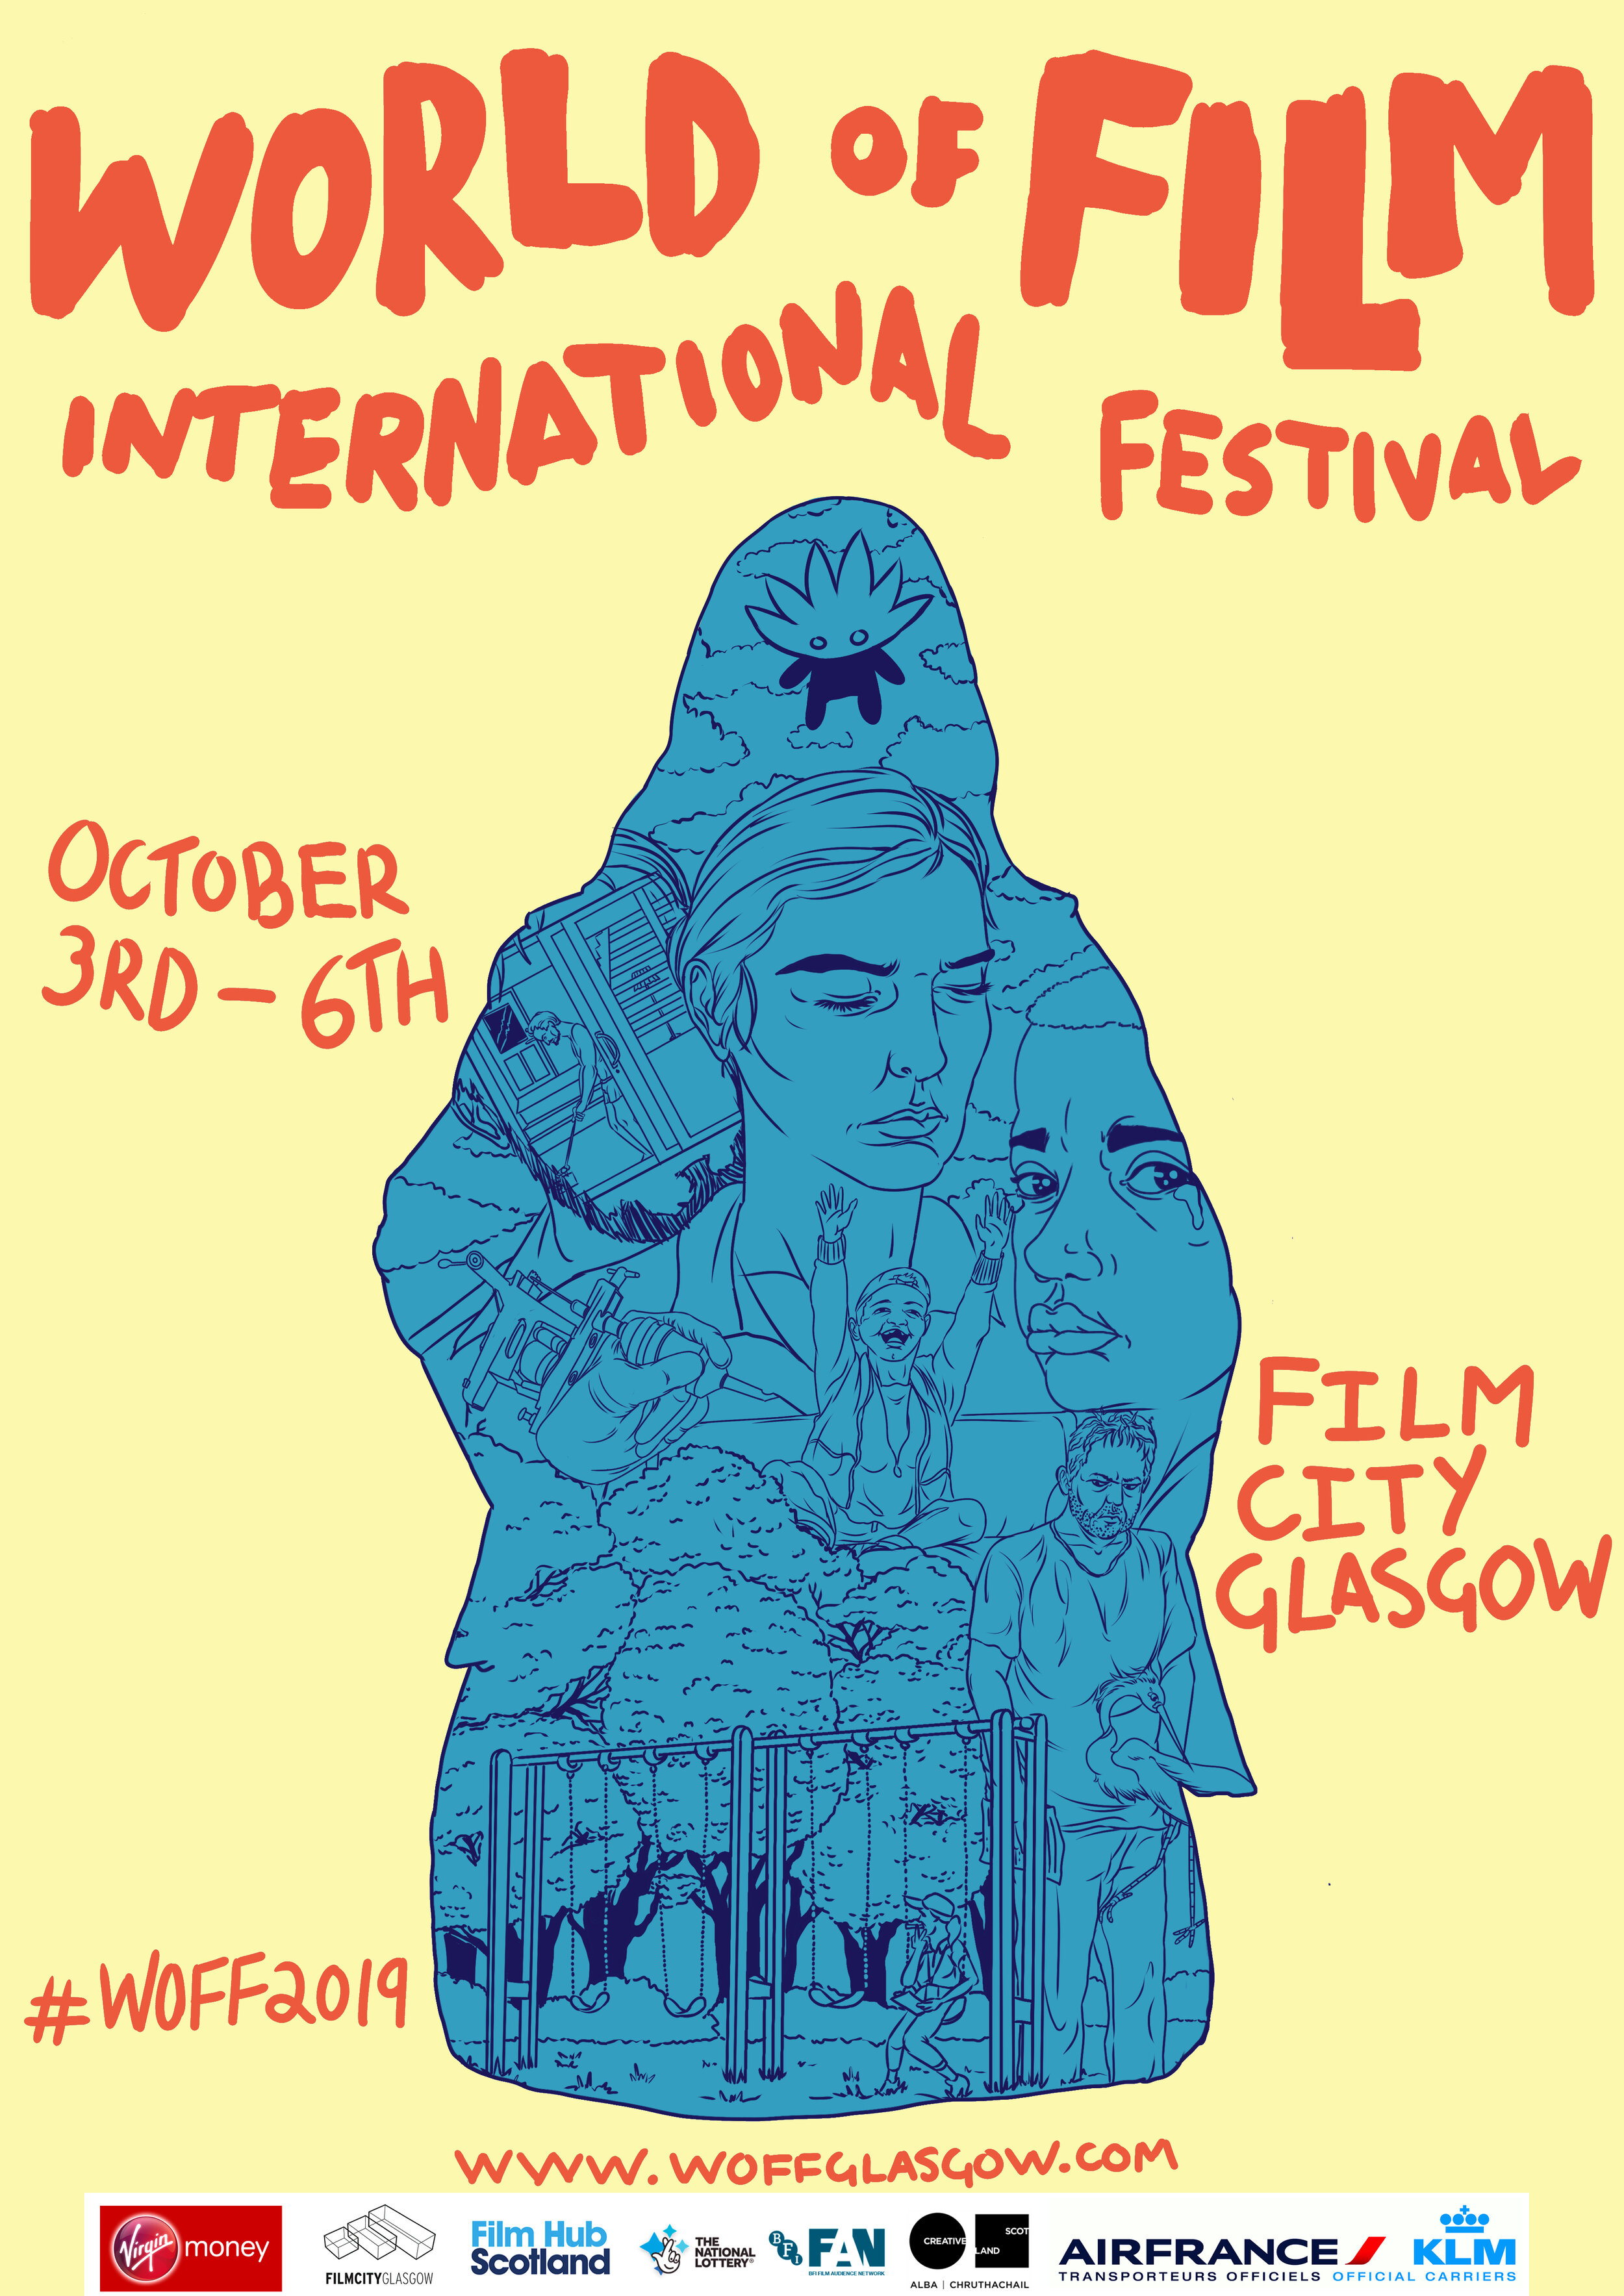 Laura Pellegrini & Stefano Da Fre will participate on the jury for this year's lineup at World of Film International Festival Glasgow! - https://woffglasgow.com/jury-2018/